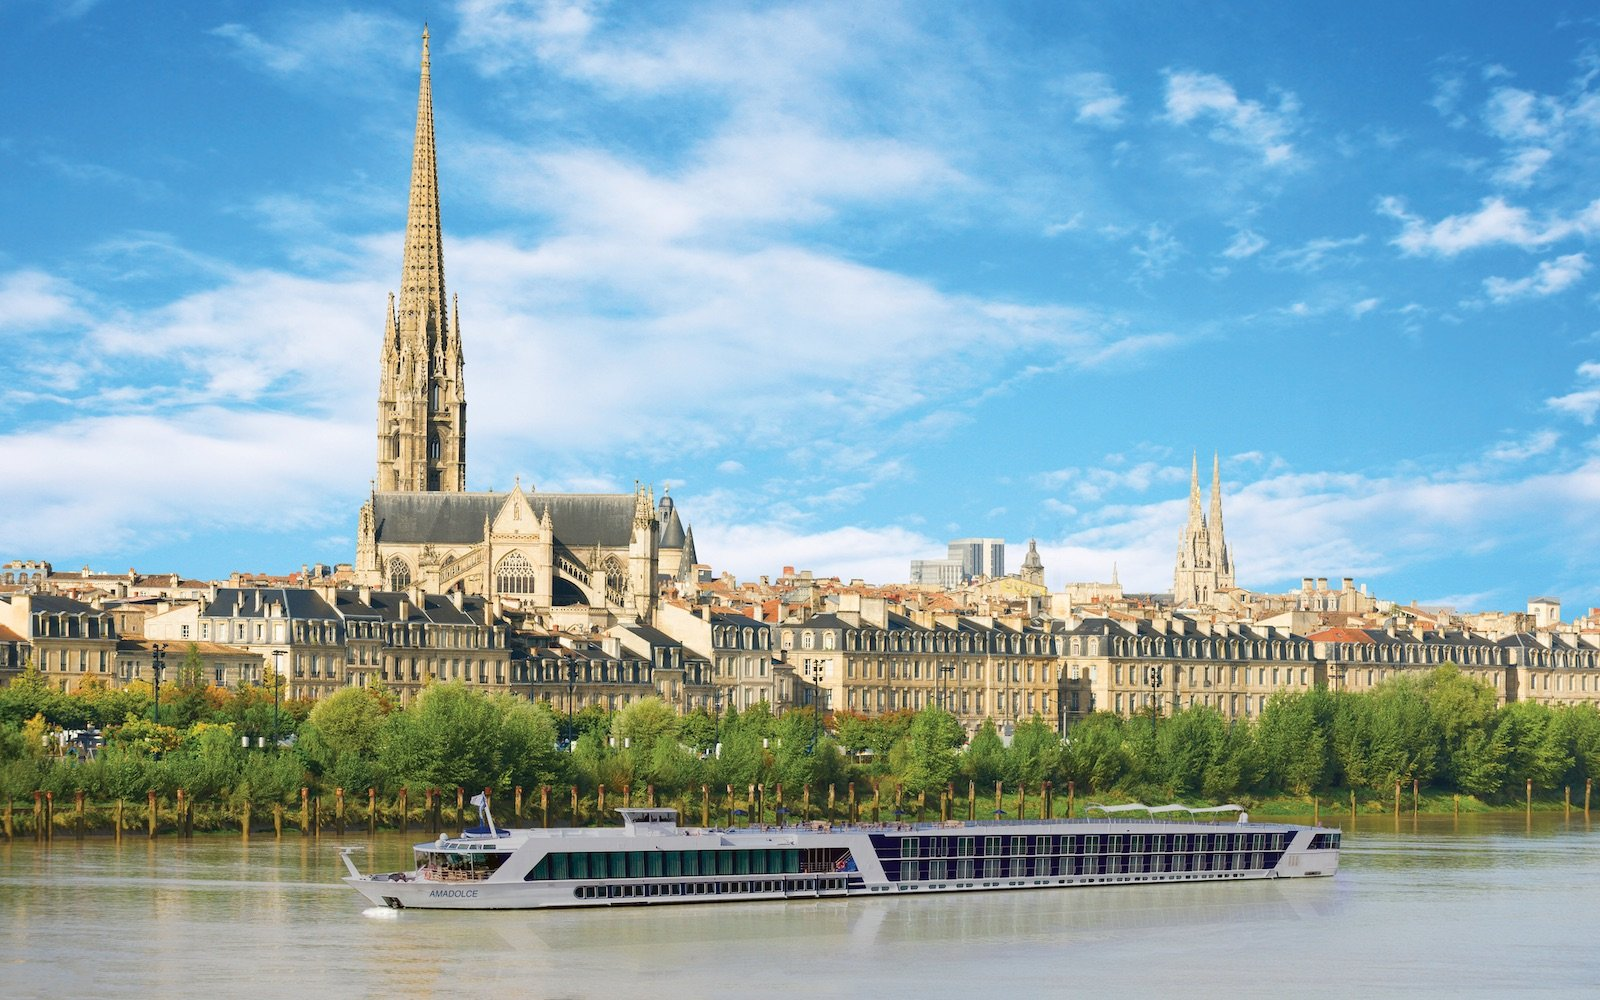 AmaWaterways Dolce river cruise